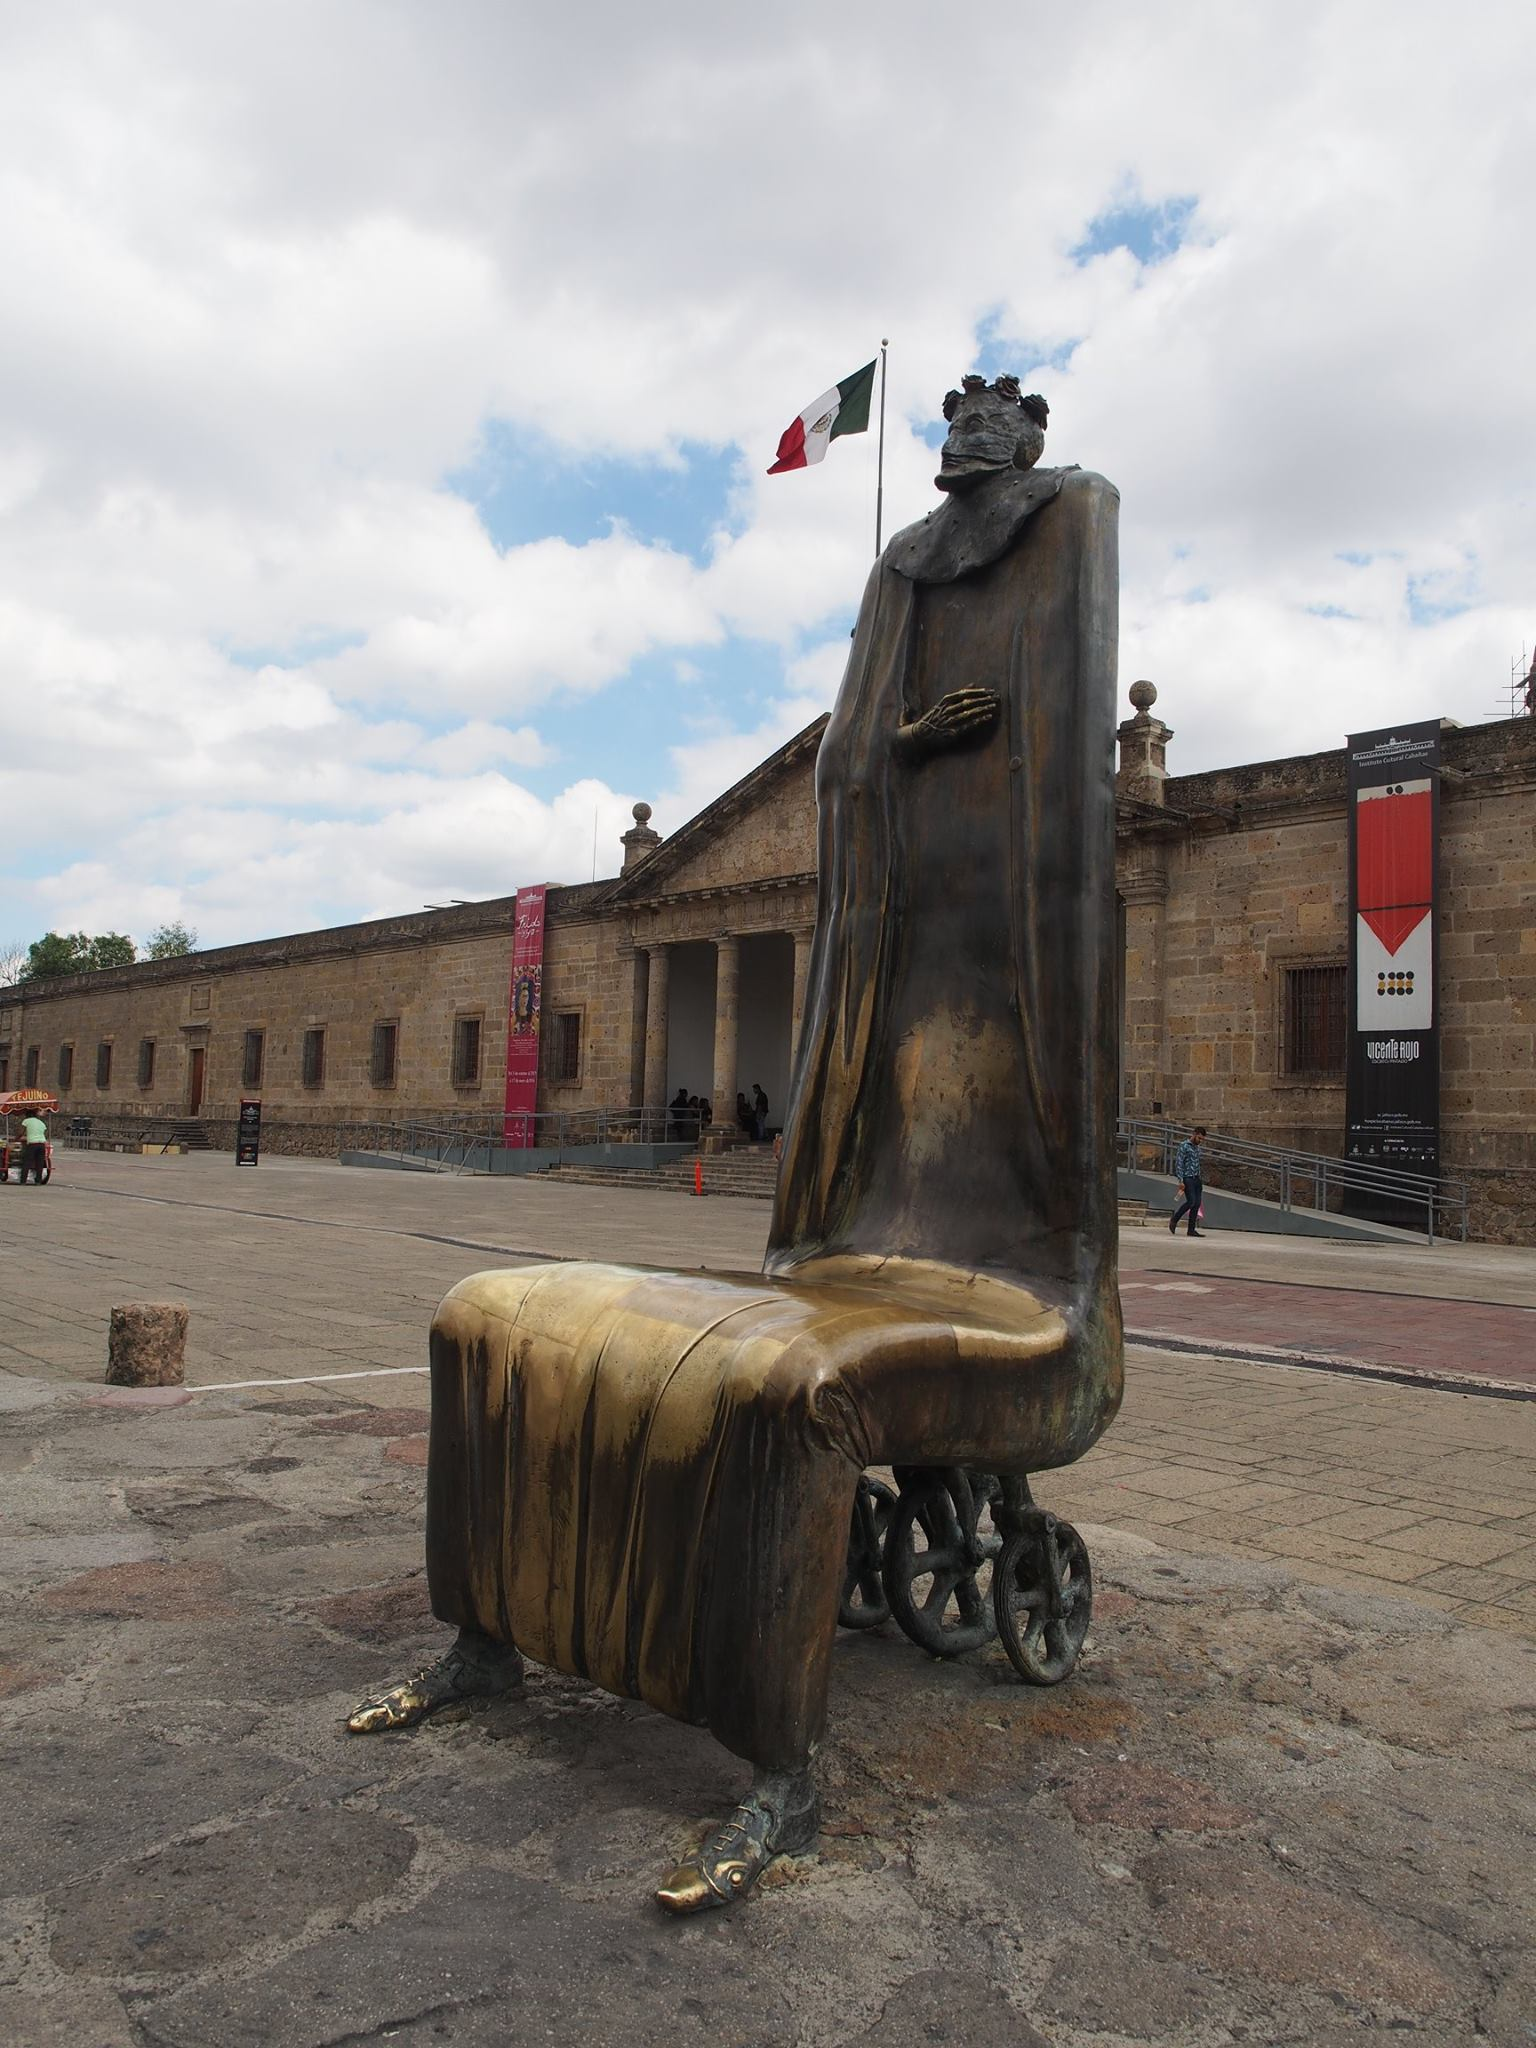 chair sculpture in front of mexican flag and building